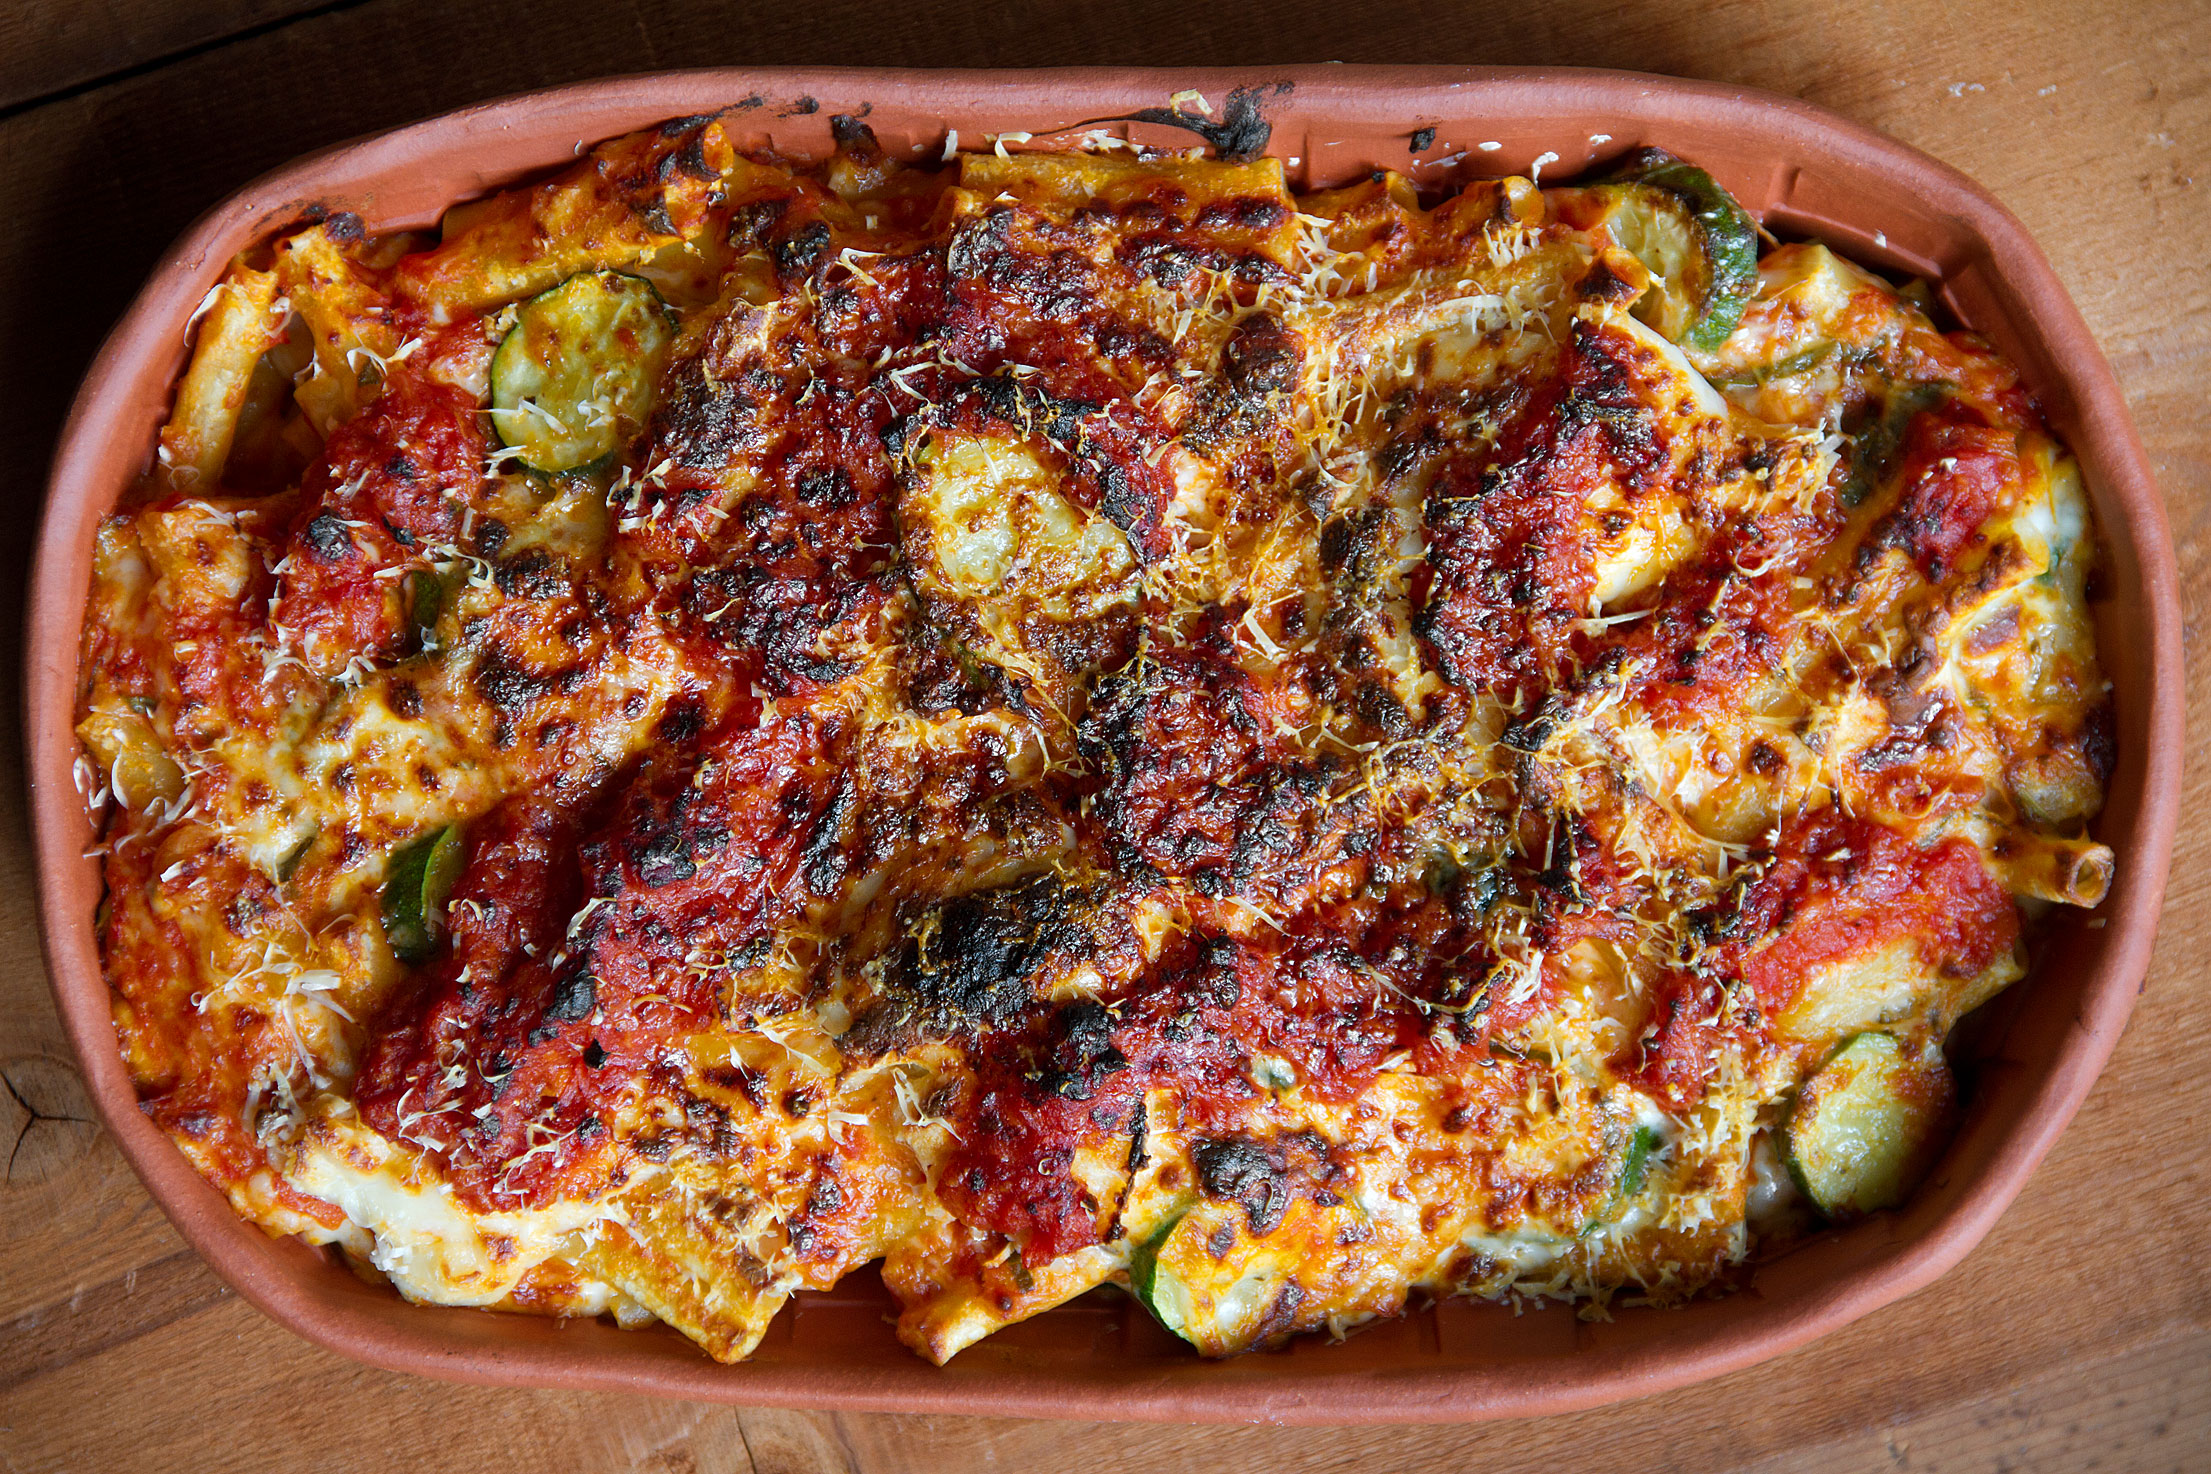 Baked Ziti with Zucchini, Pancetta, and Bechamel